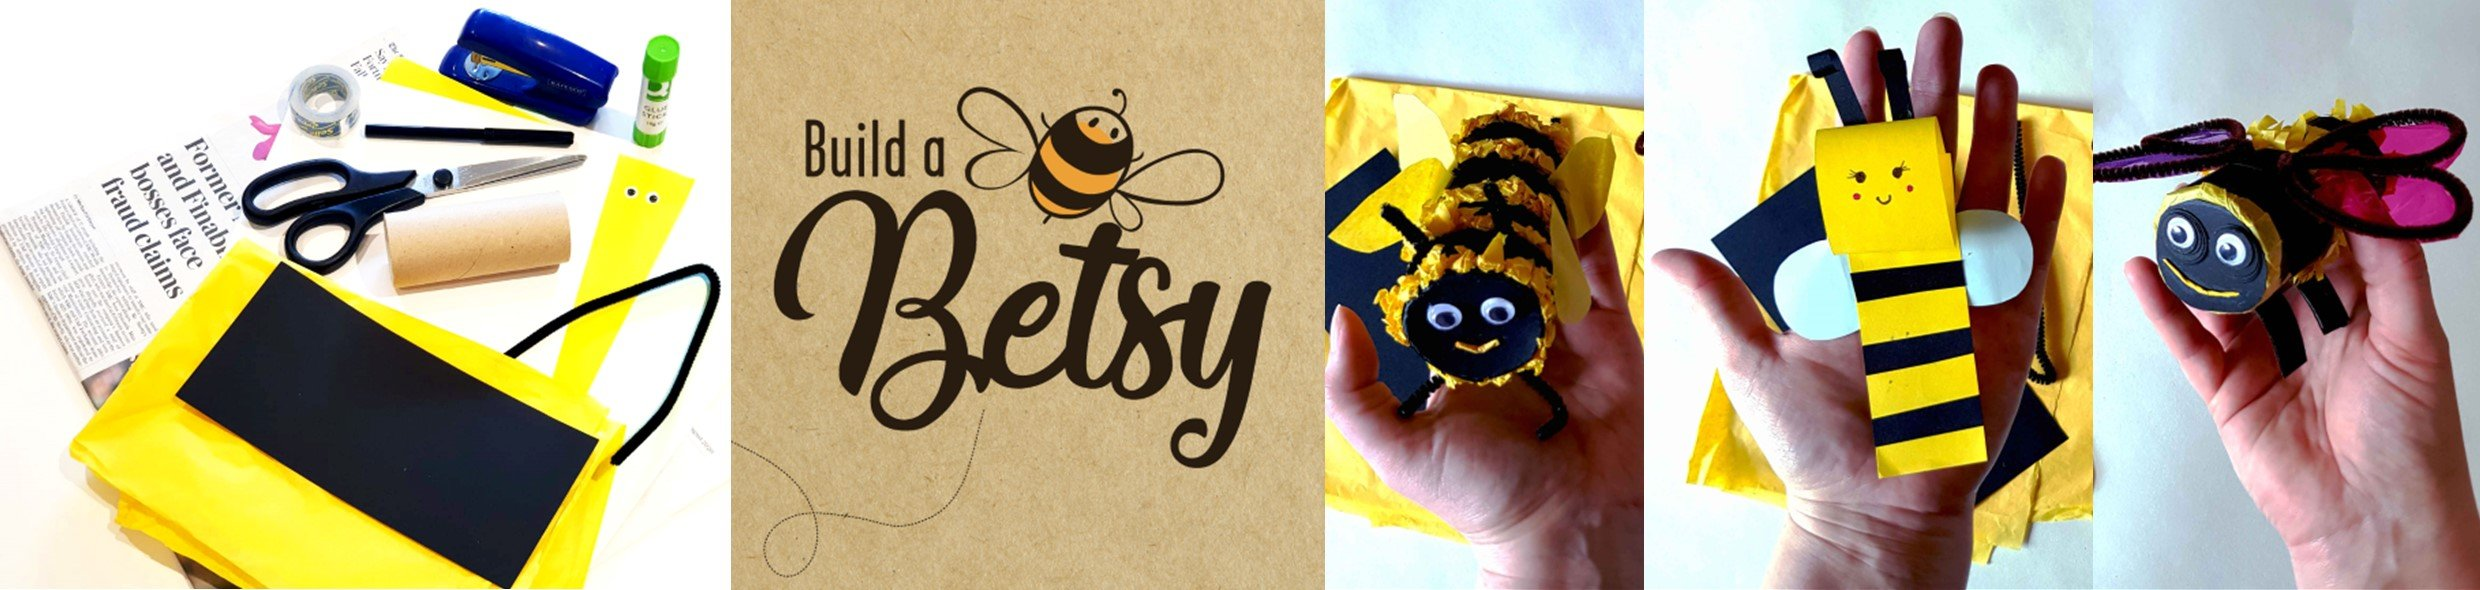 Betsy Bee Collage